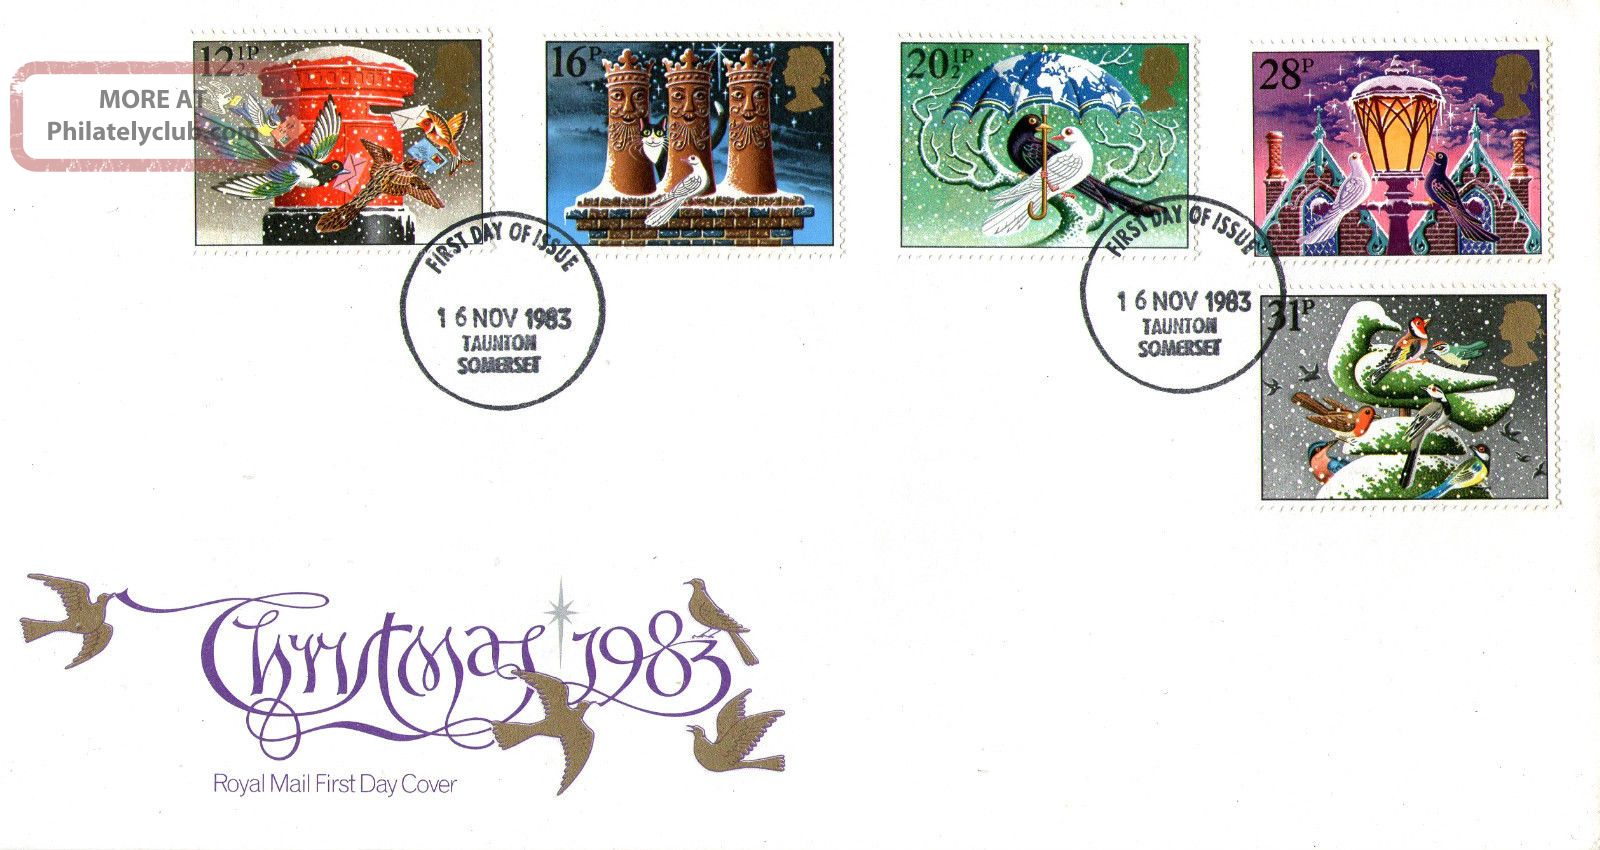 16 November 1983 Christmas Royal Mail First Day Cover Taunton Fdi Topical Stamps photo